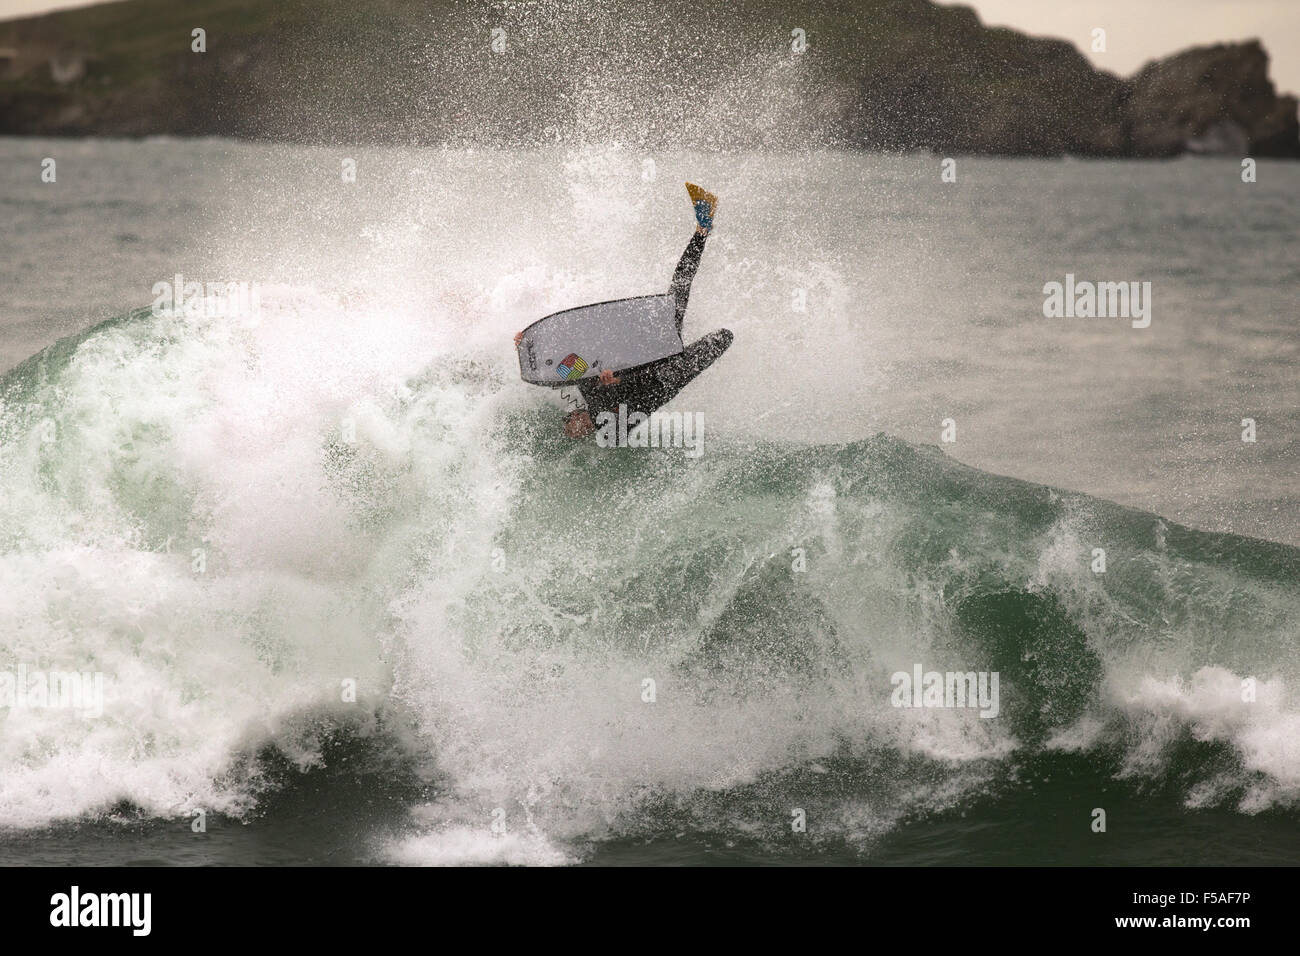 A bodyboarder is flung into the air at the top of a wave - Stock Image